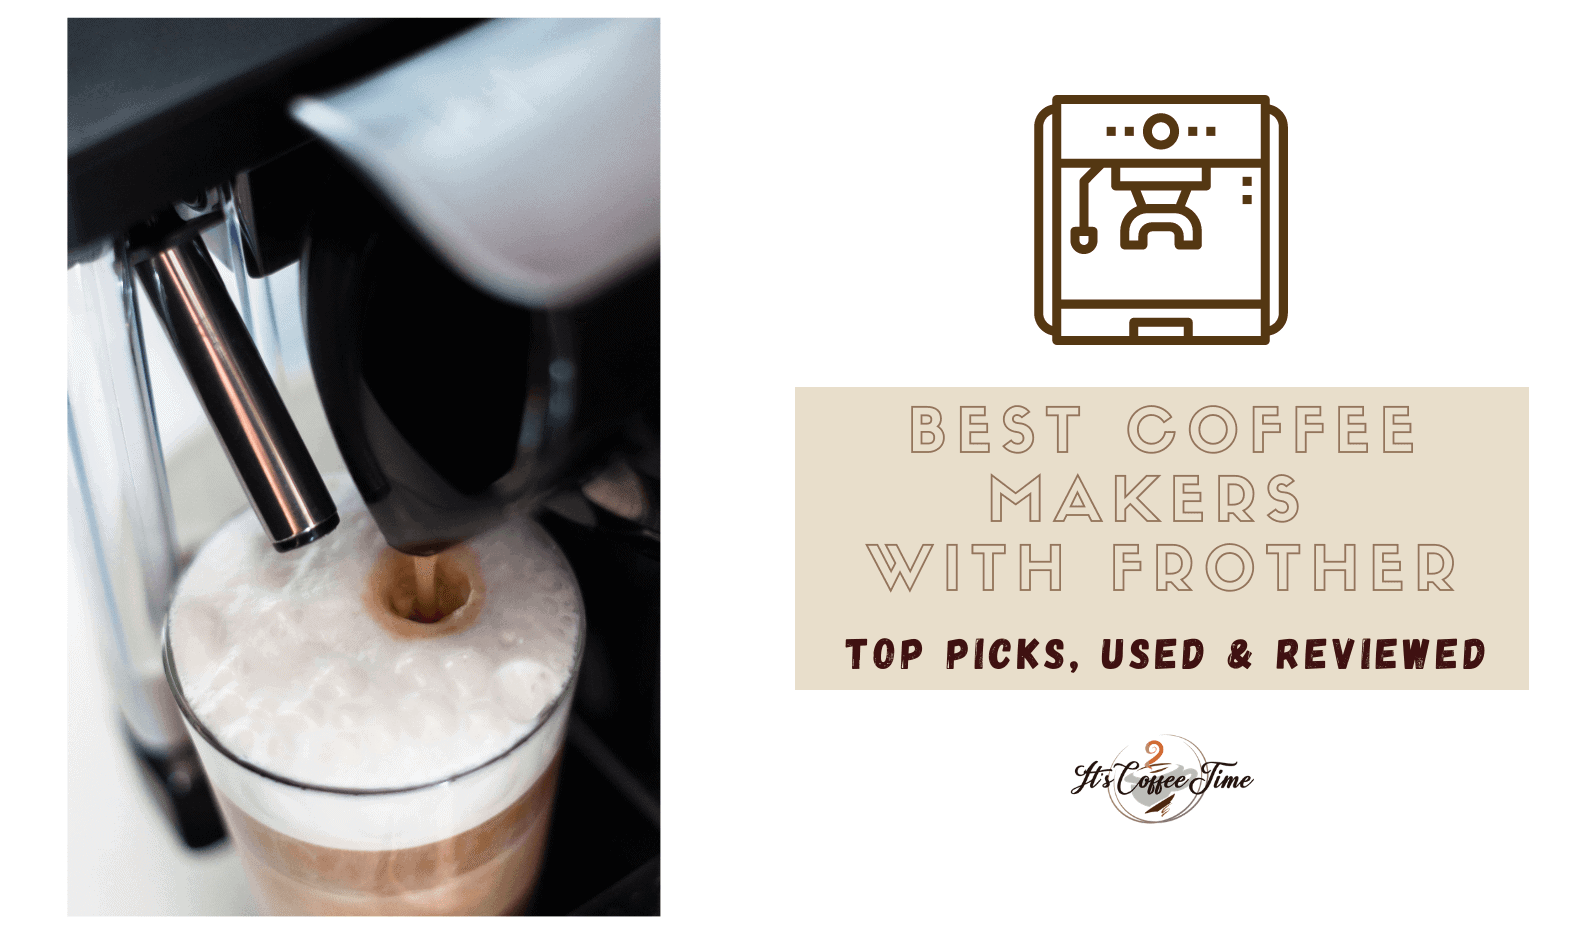 Best Coffee Makers with Frother